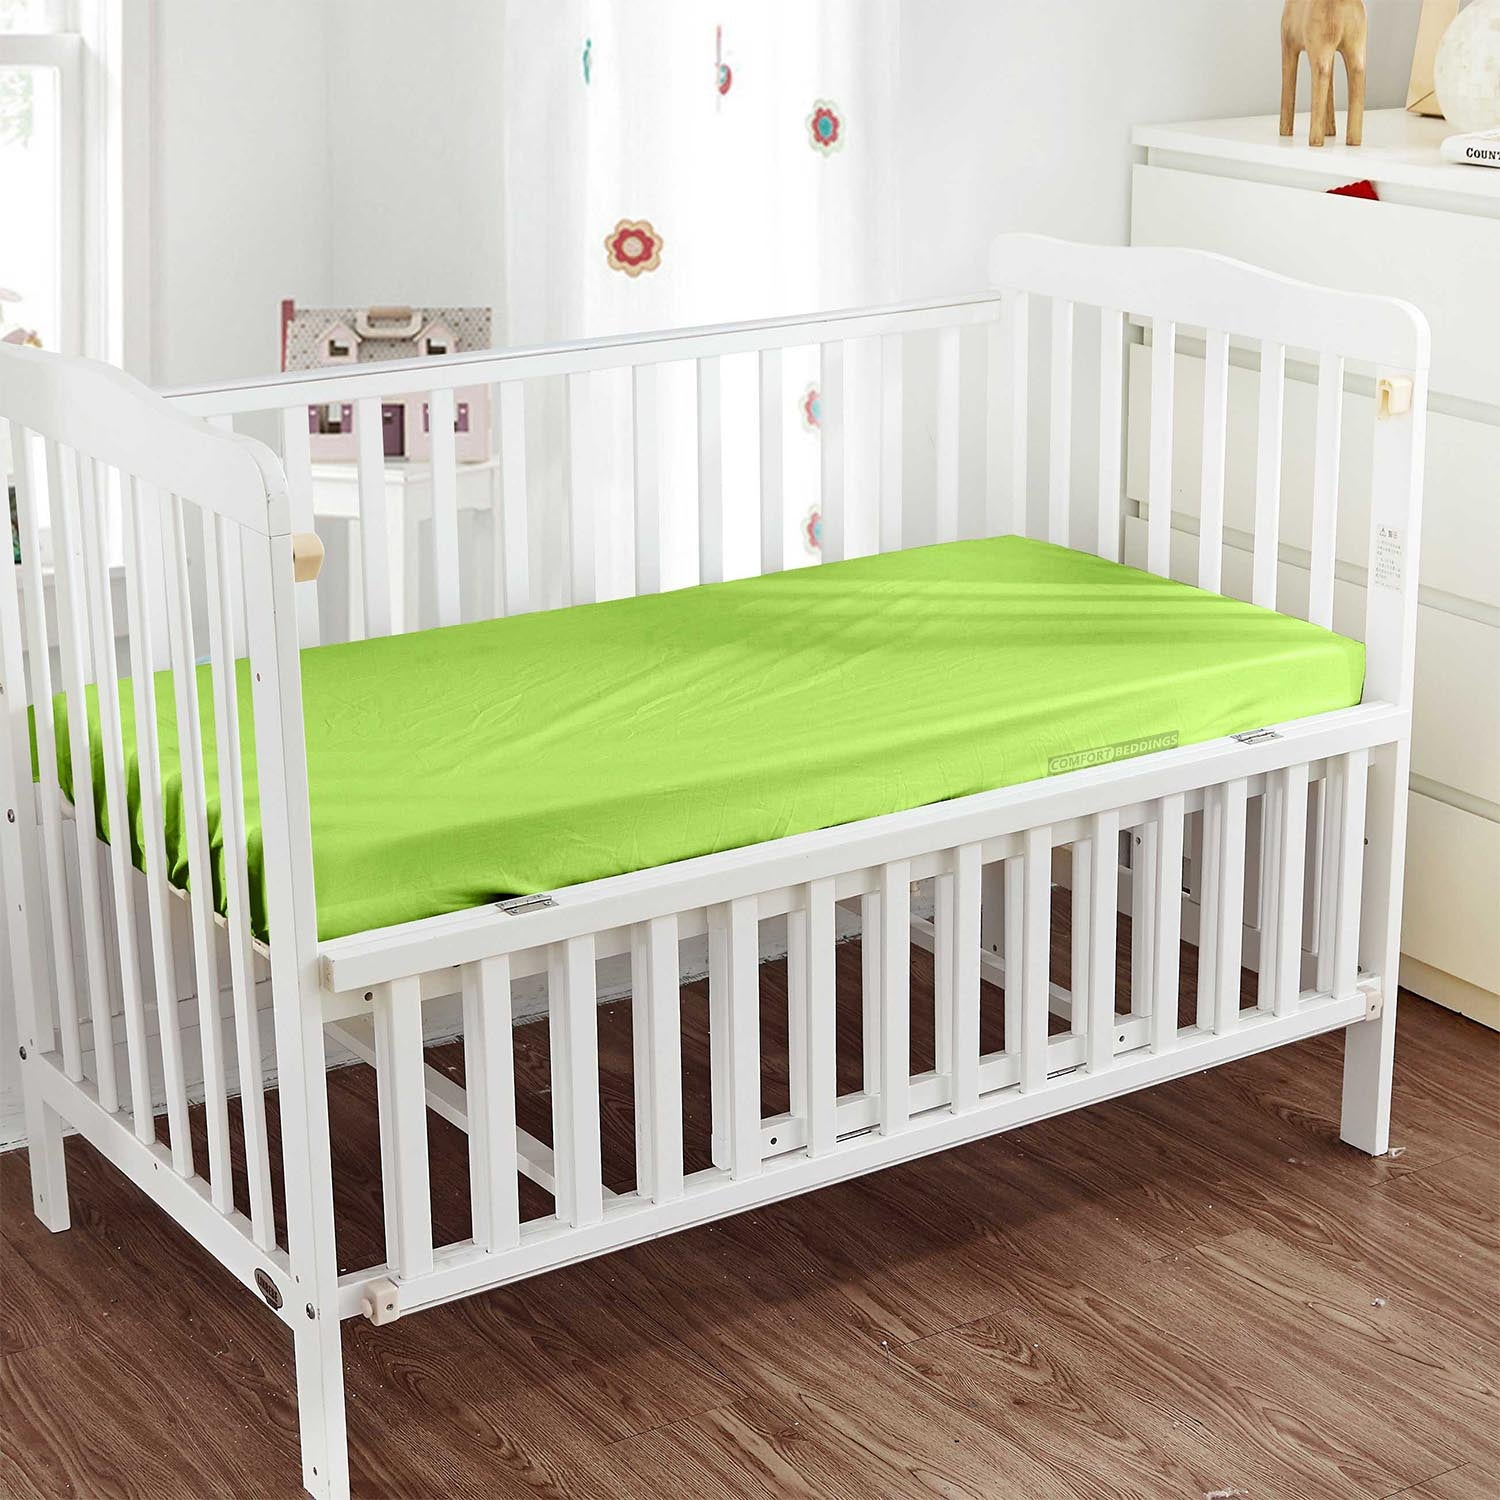 Soft Parrot Green Fitted Crib Sheets - 600TC